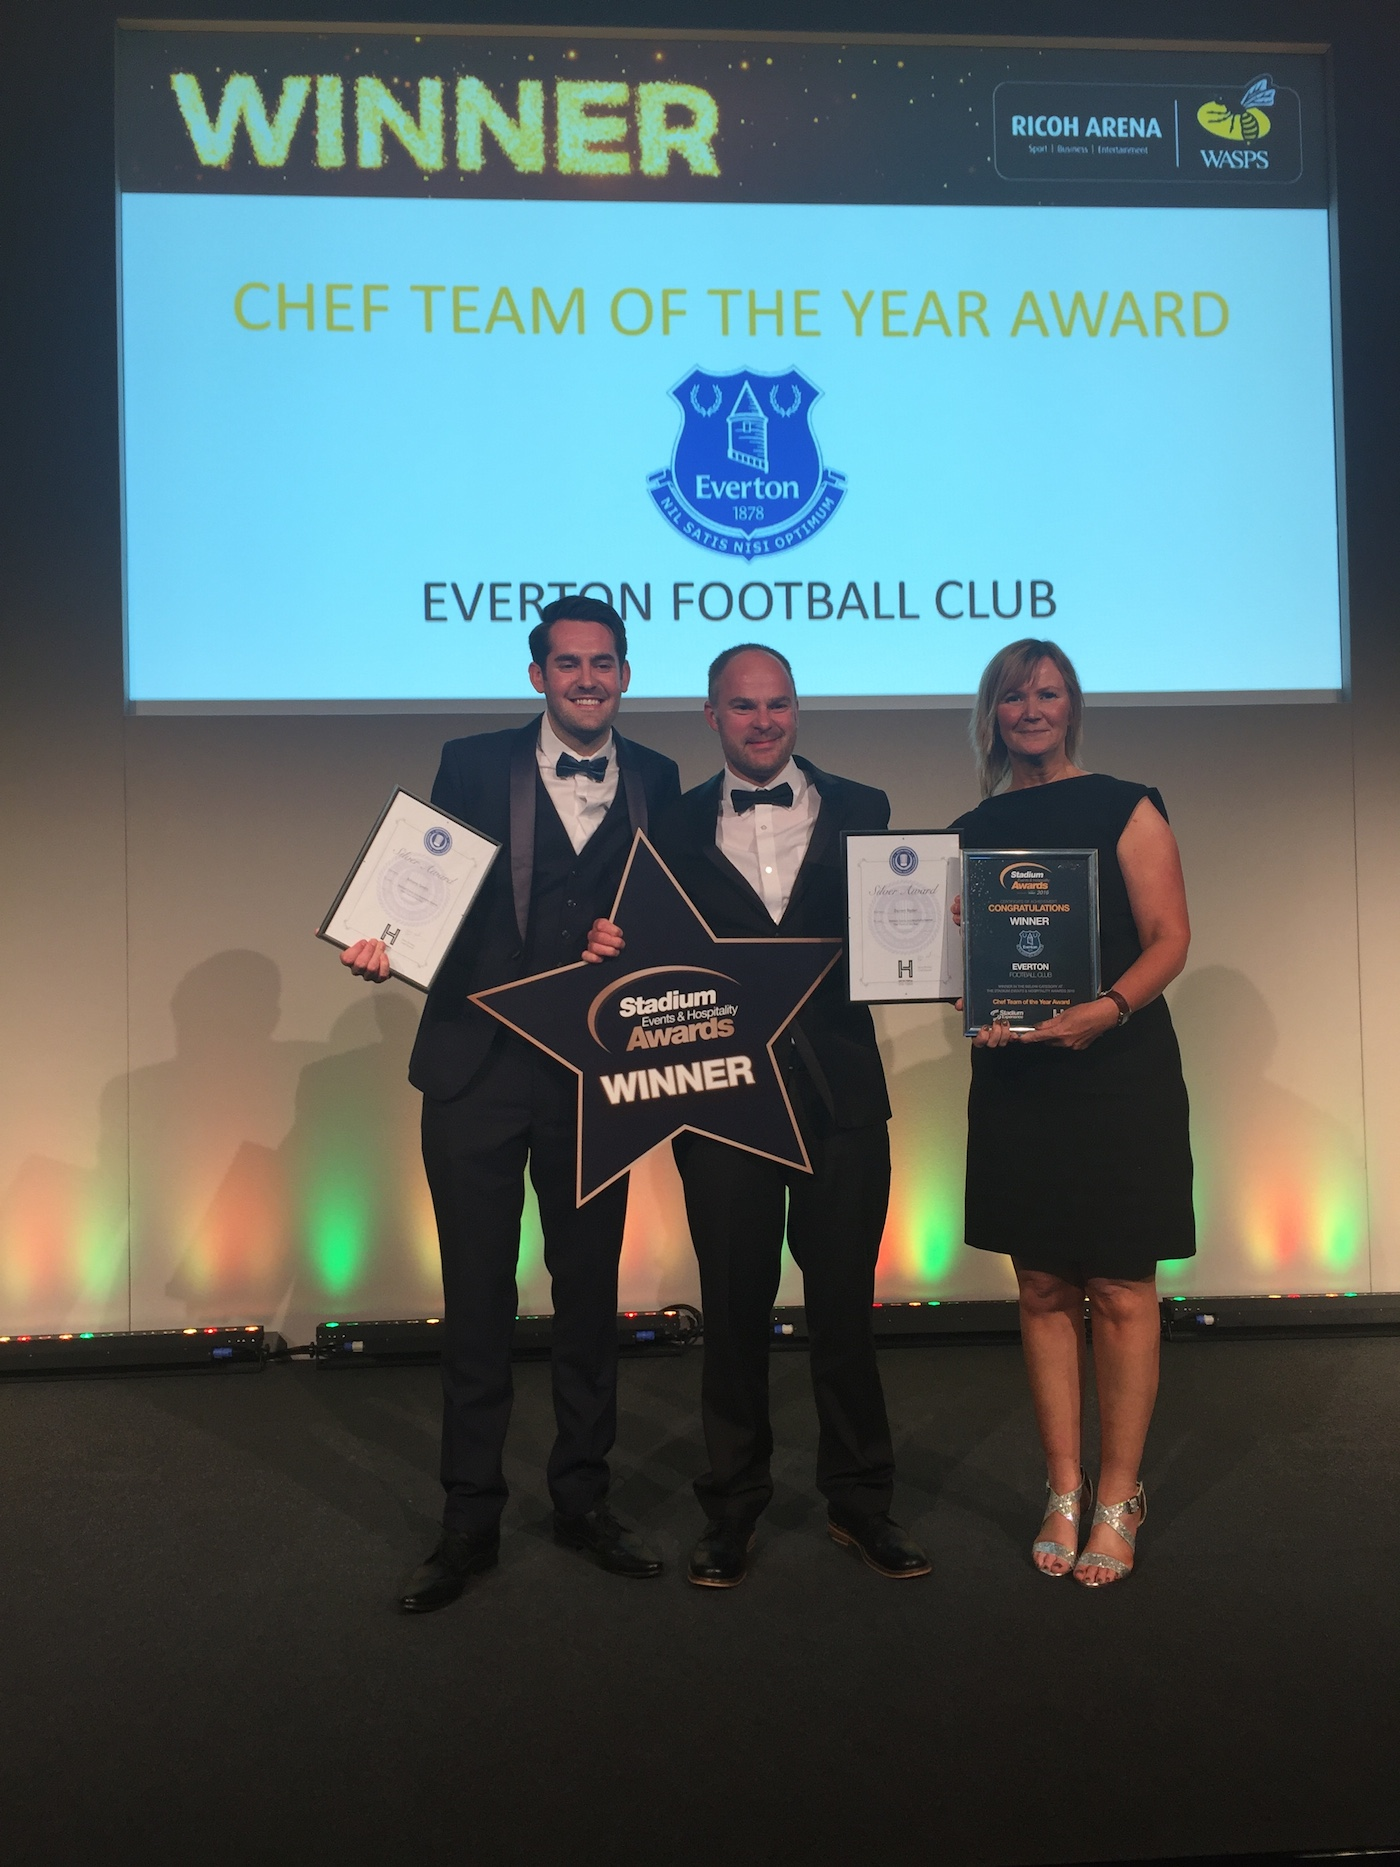 The Sodexo team at Everton receiving their Chef Team of the Year award